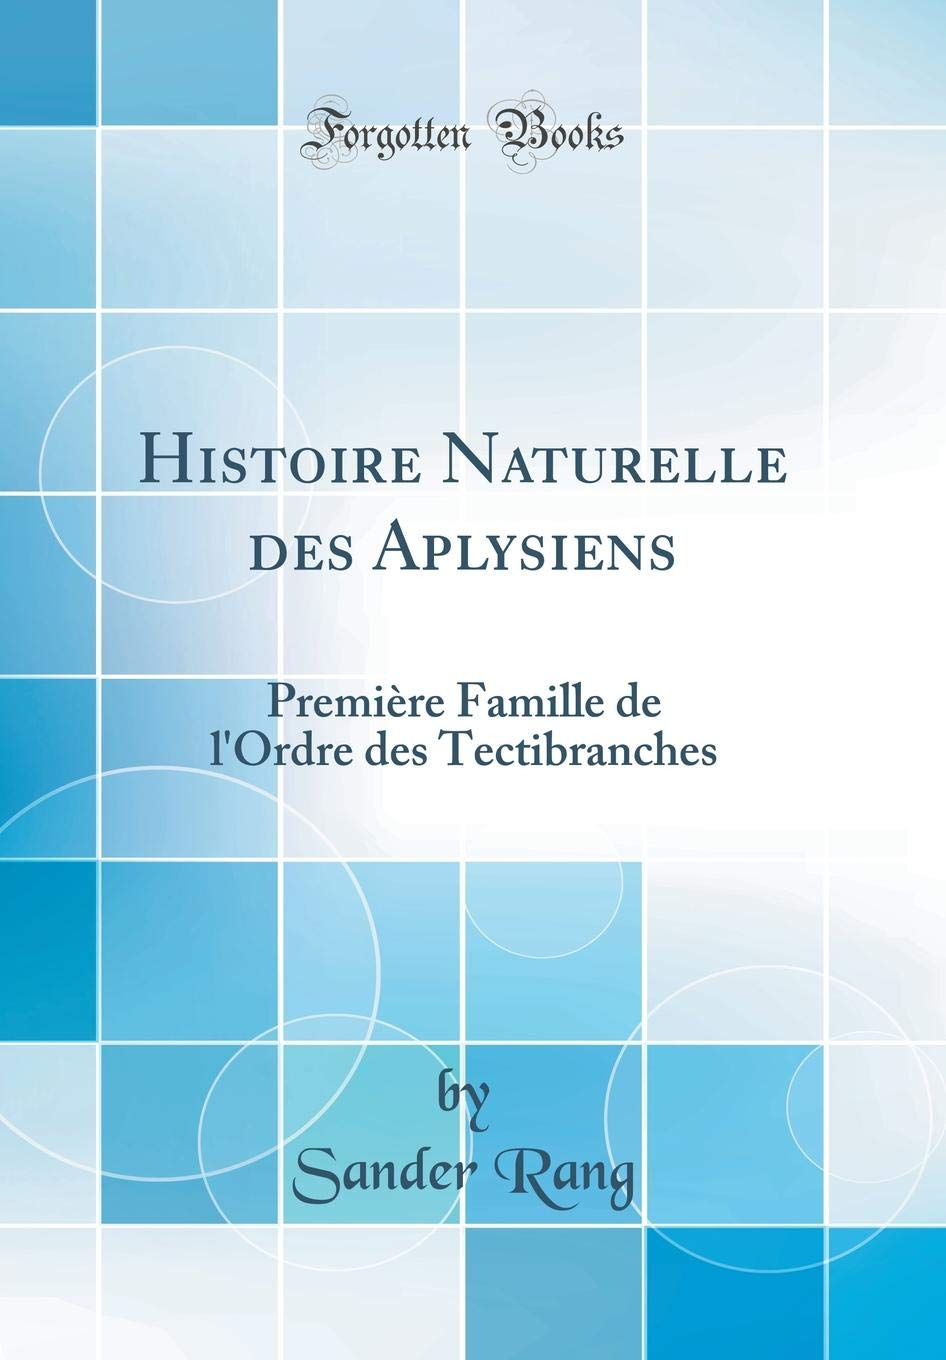 Histoire Naturelle des Aplysiens: Première Famille de lOrdre des Tectibranches (Classic Reprint) (French Edition) (French) Hardcover – March 3, 2018